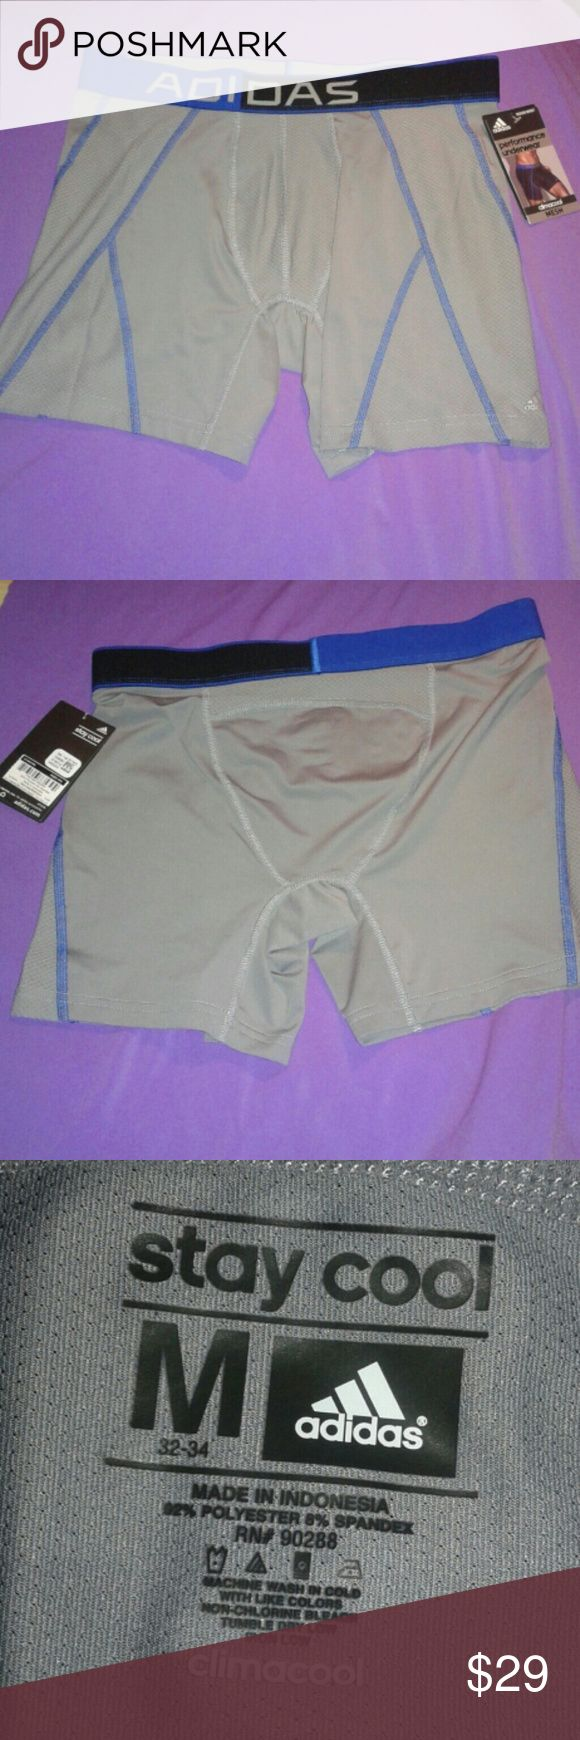 Adidas Boxer Brief Climacool Mesh Underwear Sz M New and never used boxer brief performance underwear climacool mesh. Size M for 32-34 waist. That what the tag says. 92% polyester and 8% spandex. Final price unless you bundle. Adidas Underwear & Socks Boxer Briefs